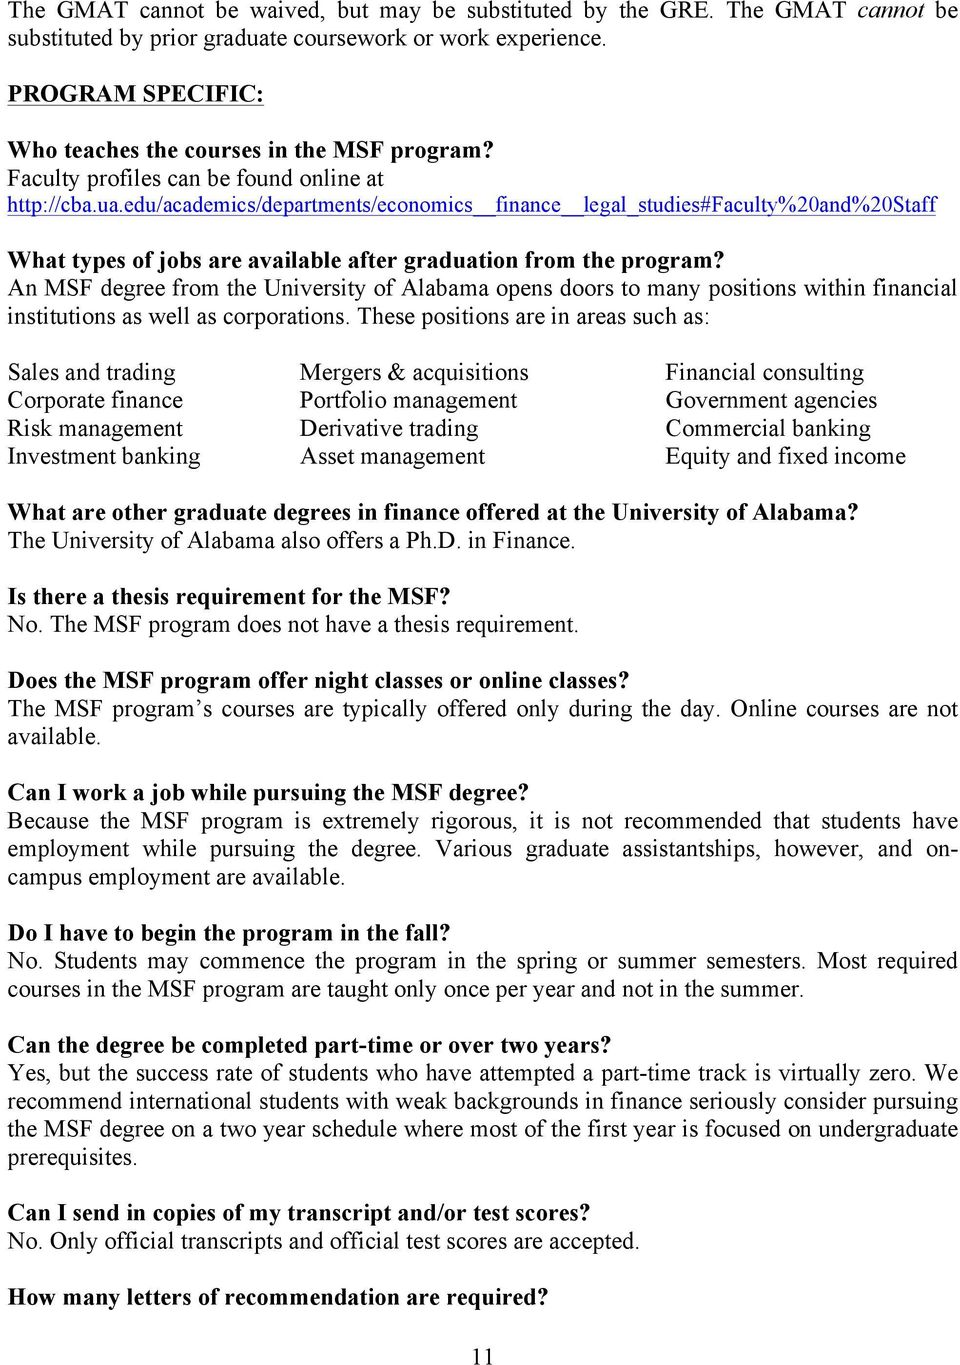 edu/academics/departments/economics finance legal_studies#faculty%20and%20staff What types of jobs are available after graduation from the program?